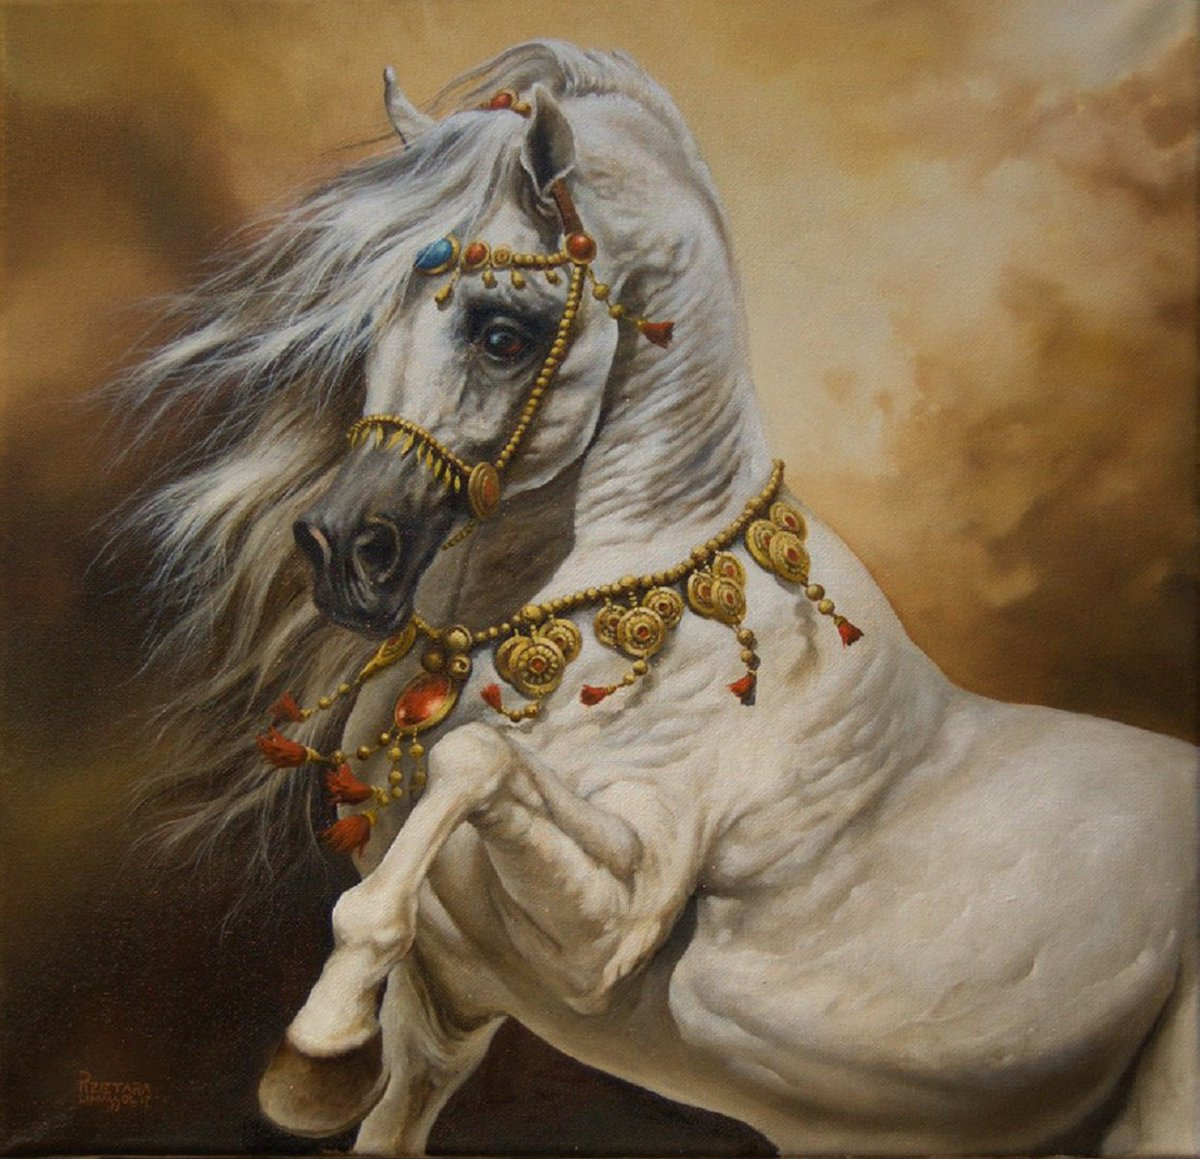 Selling off this years&#39;  #originalpaintings #oiloncanvas. Making room for new work.  #art #artist #horese  #christmasgifts #christmas #etsy #originalart #beauty #happy #bargain #equineart #now €700  https://www. etsy.com/no-en/listing/ 548865304/original-oil-painting-sleipnir?ref=shop_home_active_8 &nbsp; … <br>http://pic.twitter.com/LKfCdVIyiM